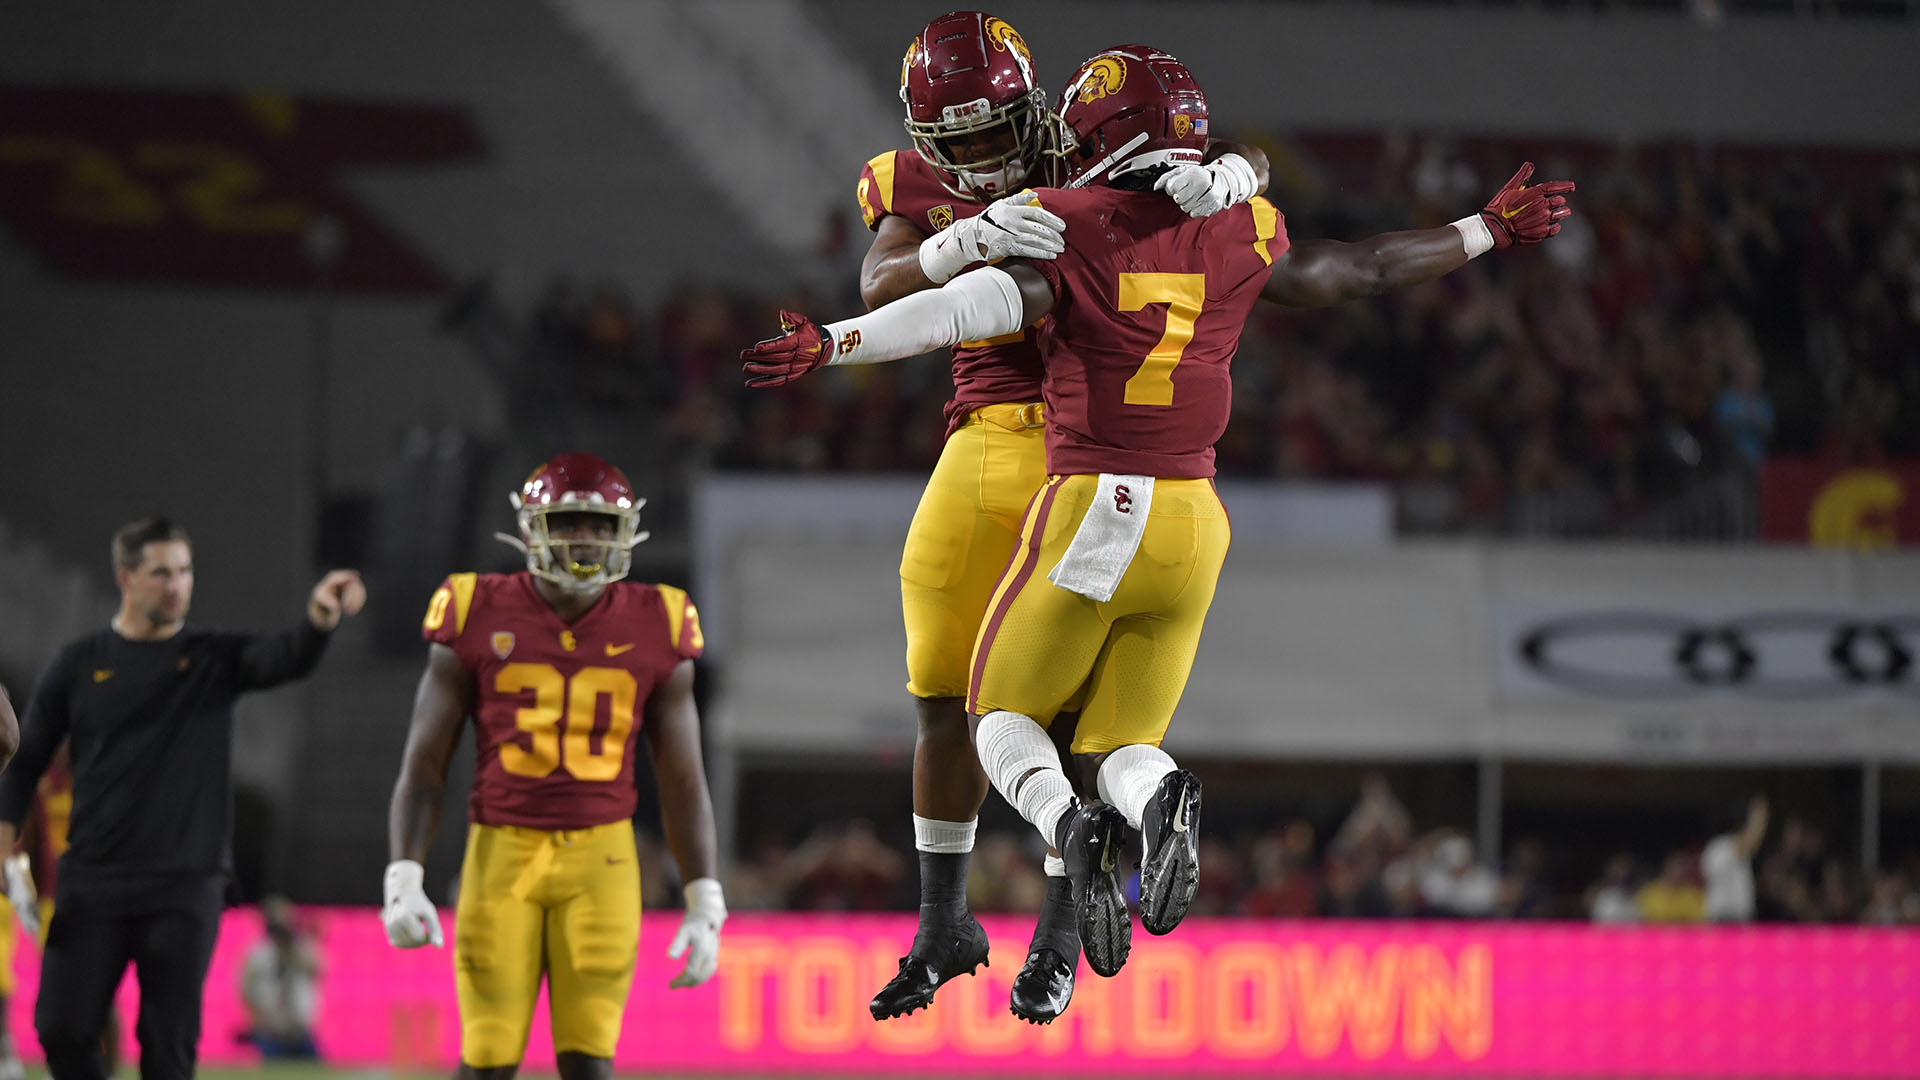 USC Football Prevails Over Fresno State, 31-23 - USC Athletics